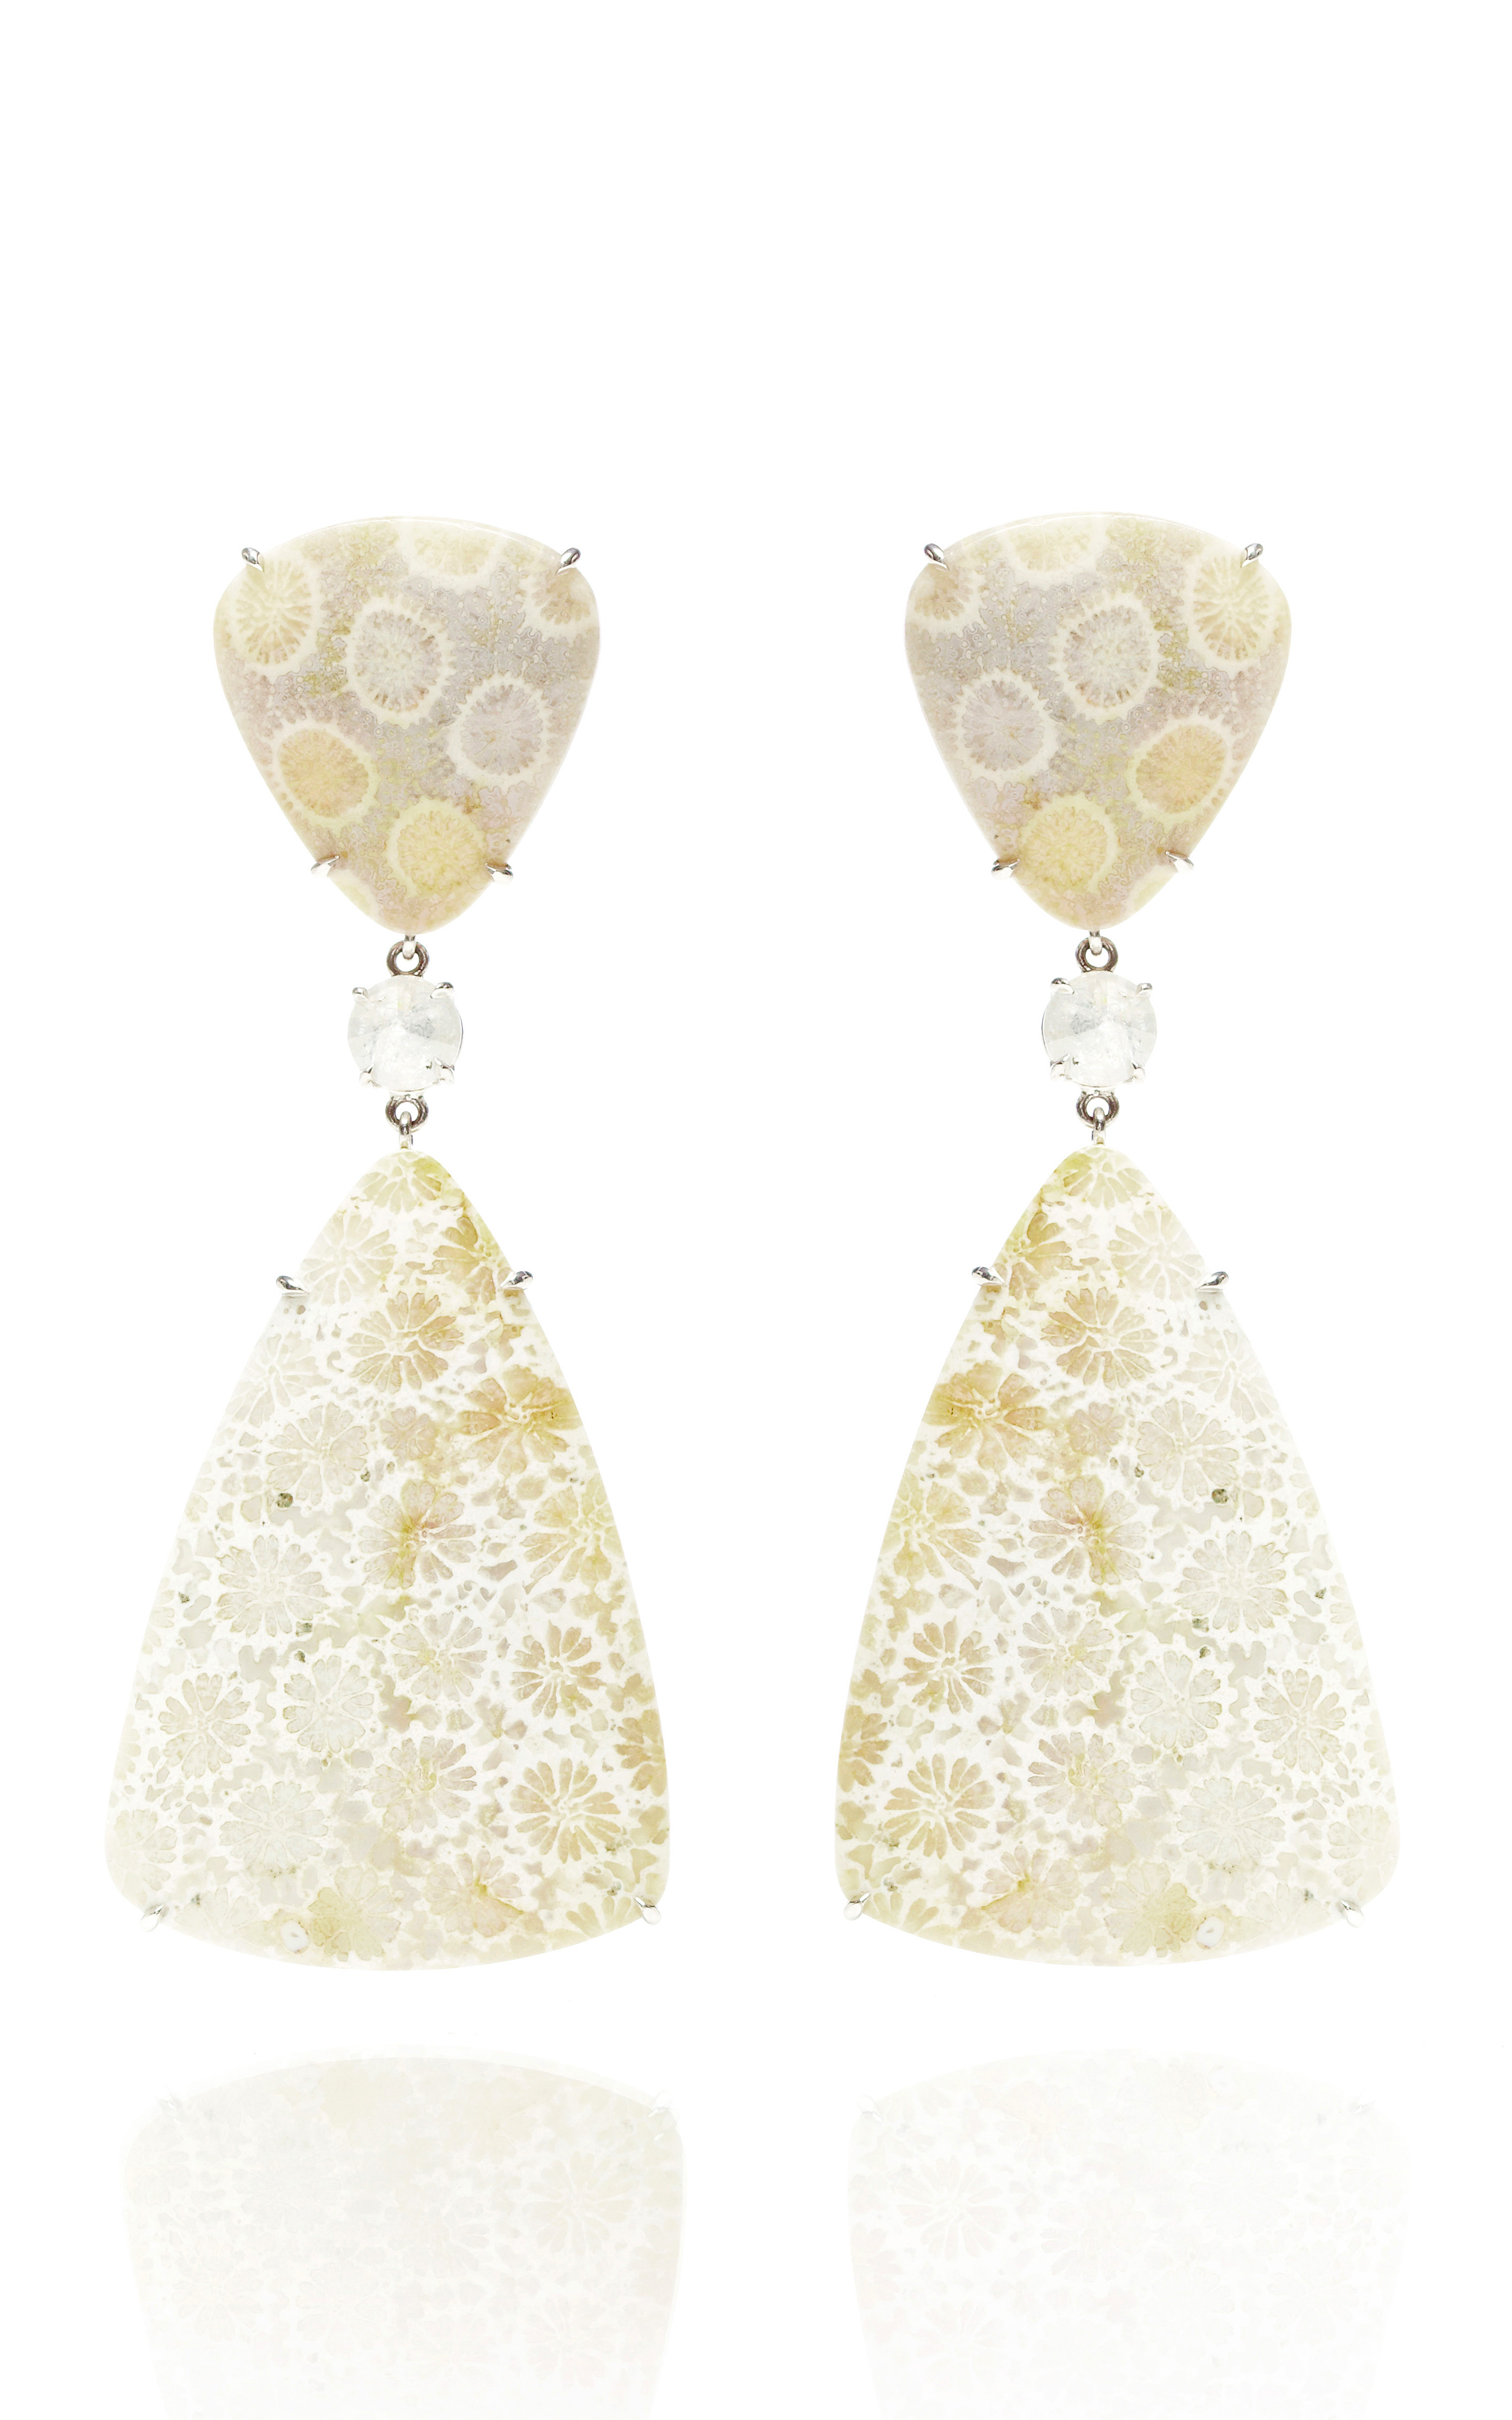 Lyst Nina Runsdorf Fossilized Coral and Icy Diamond Earrings in